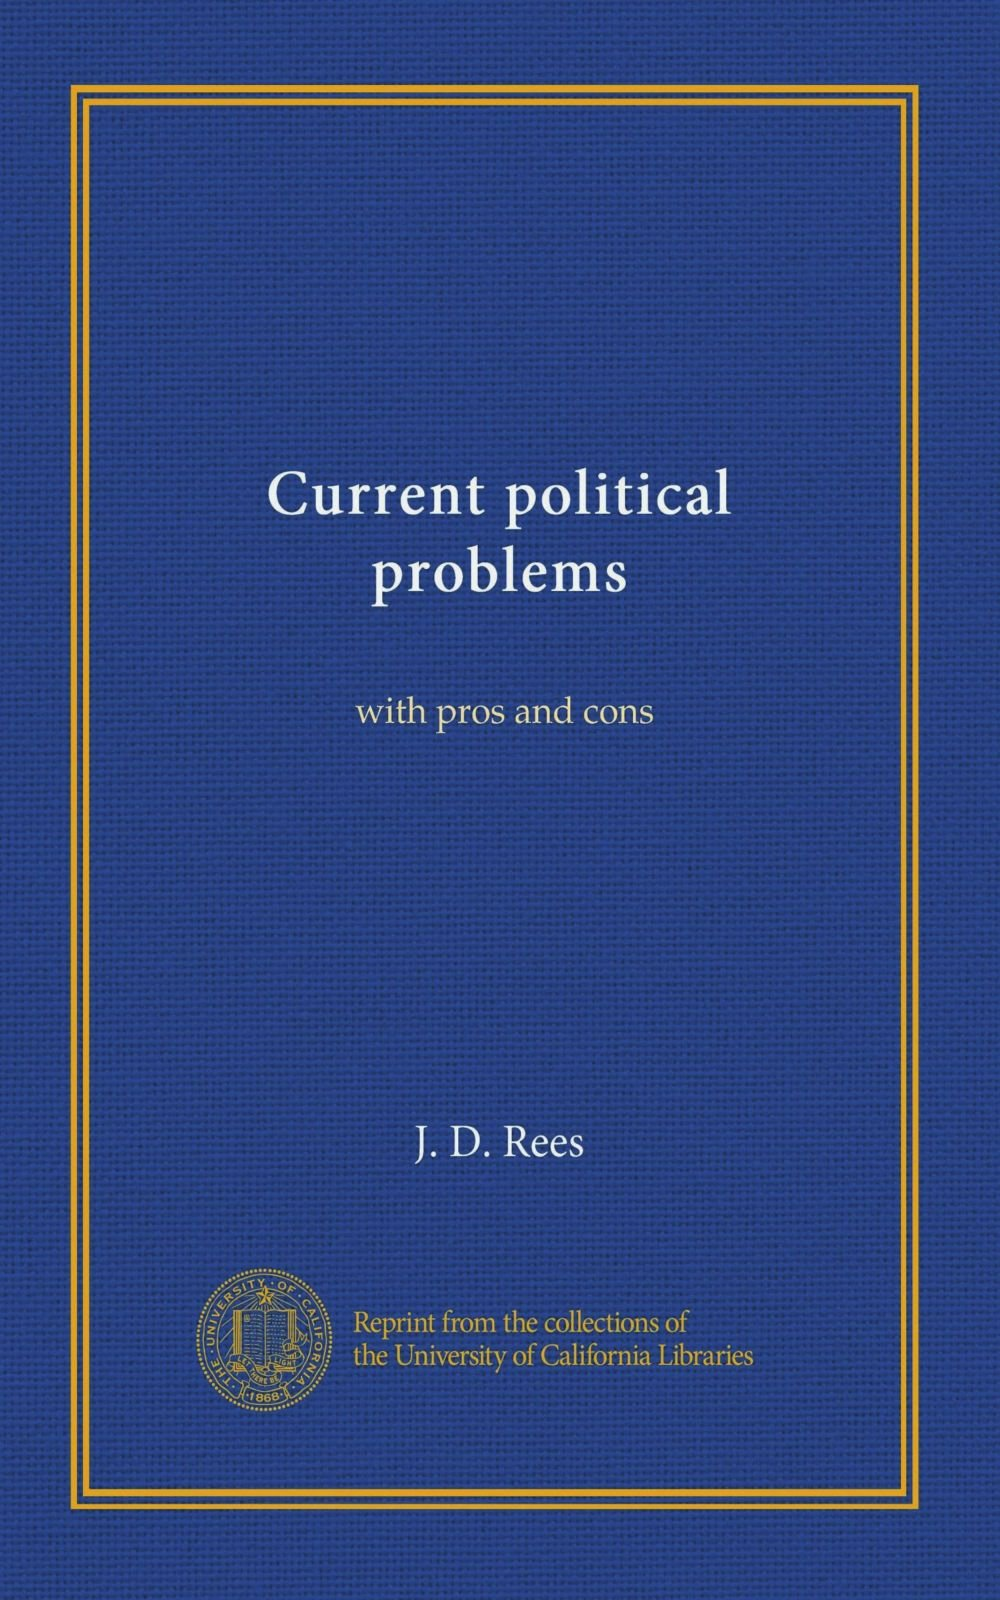 Current political problems: with pros and cons pdf